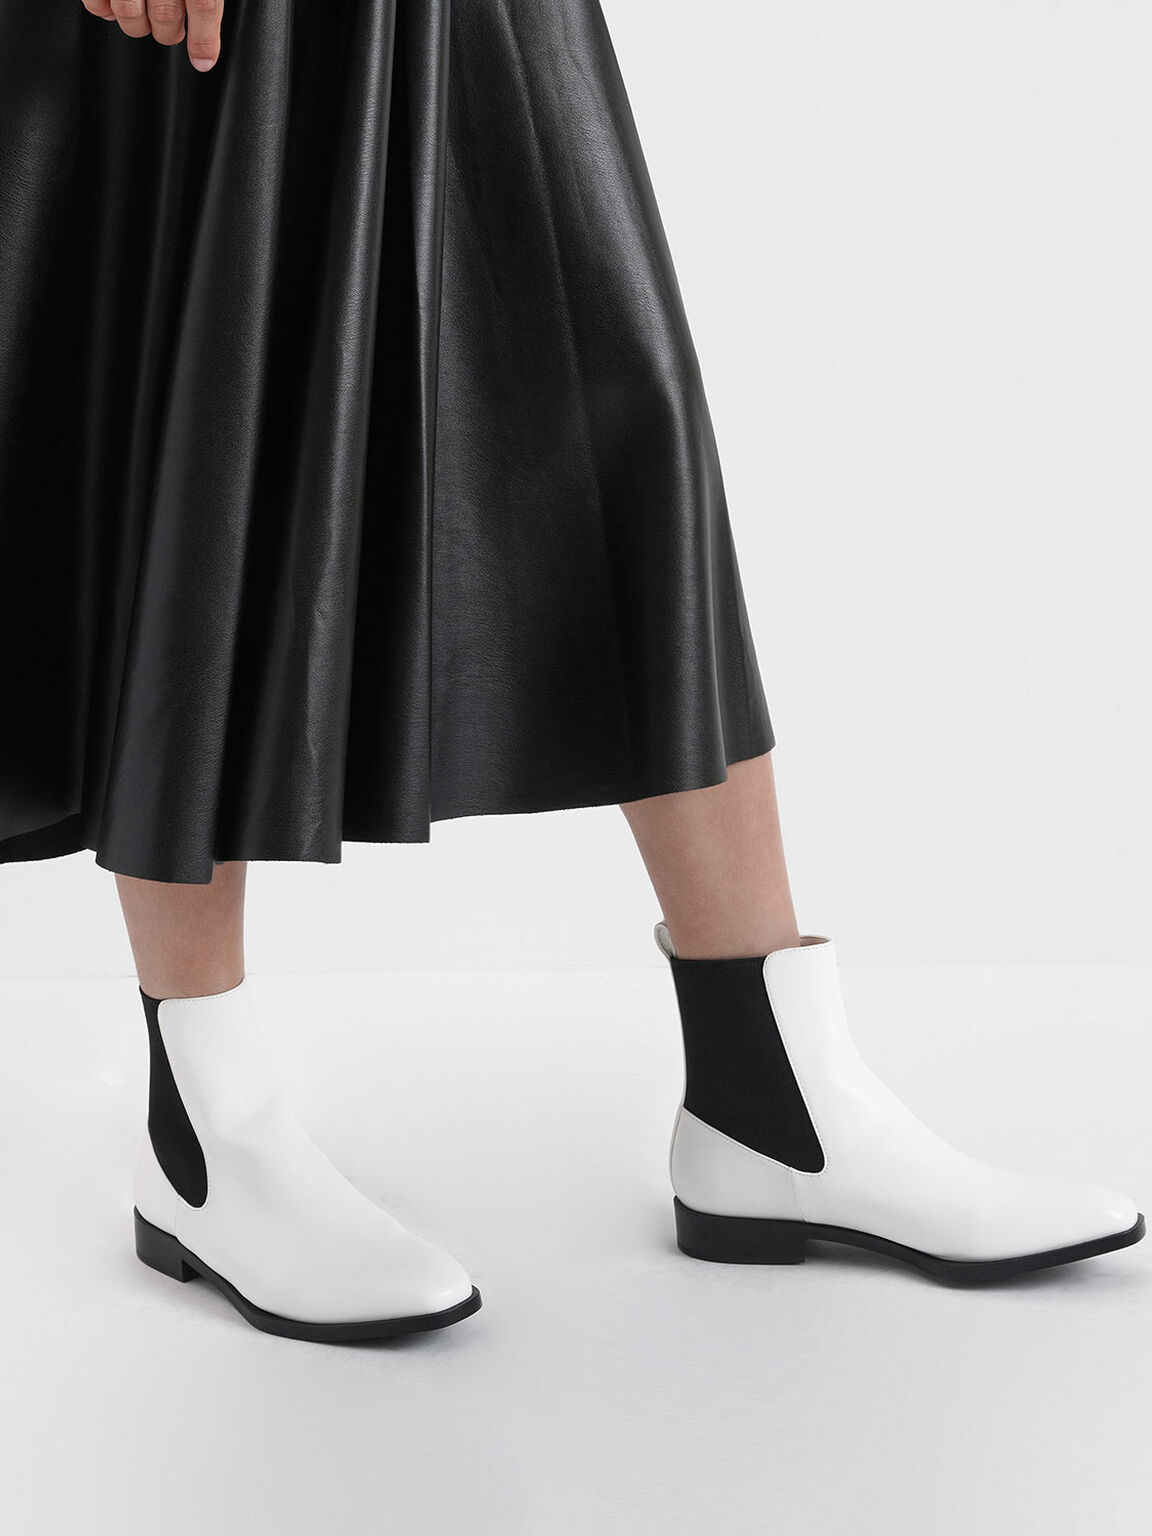 Two-Tone Mini Square Toe Chelsea Boots, White, hi-res